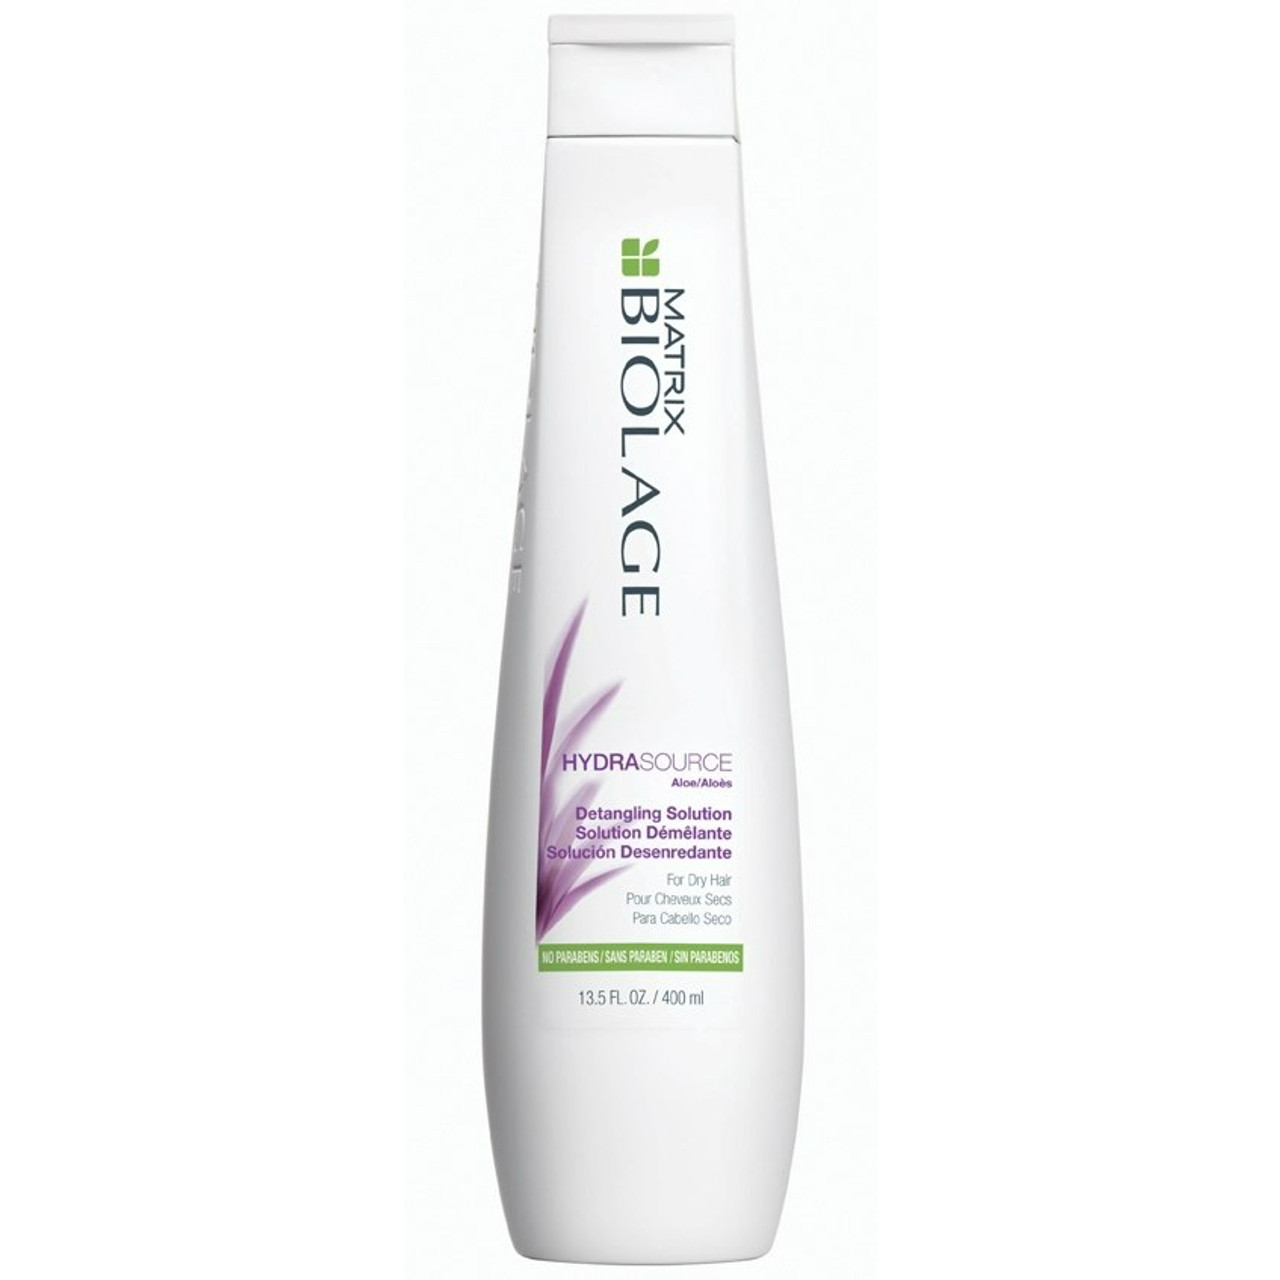 Biolage Hydrasource Detangling Solution 13.5 oz